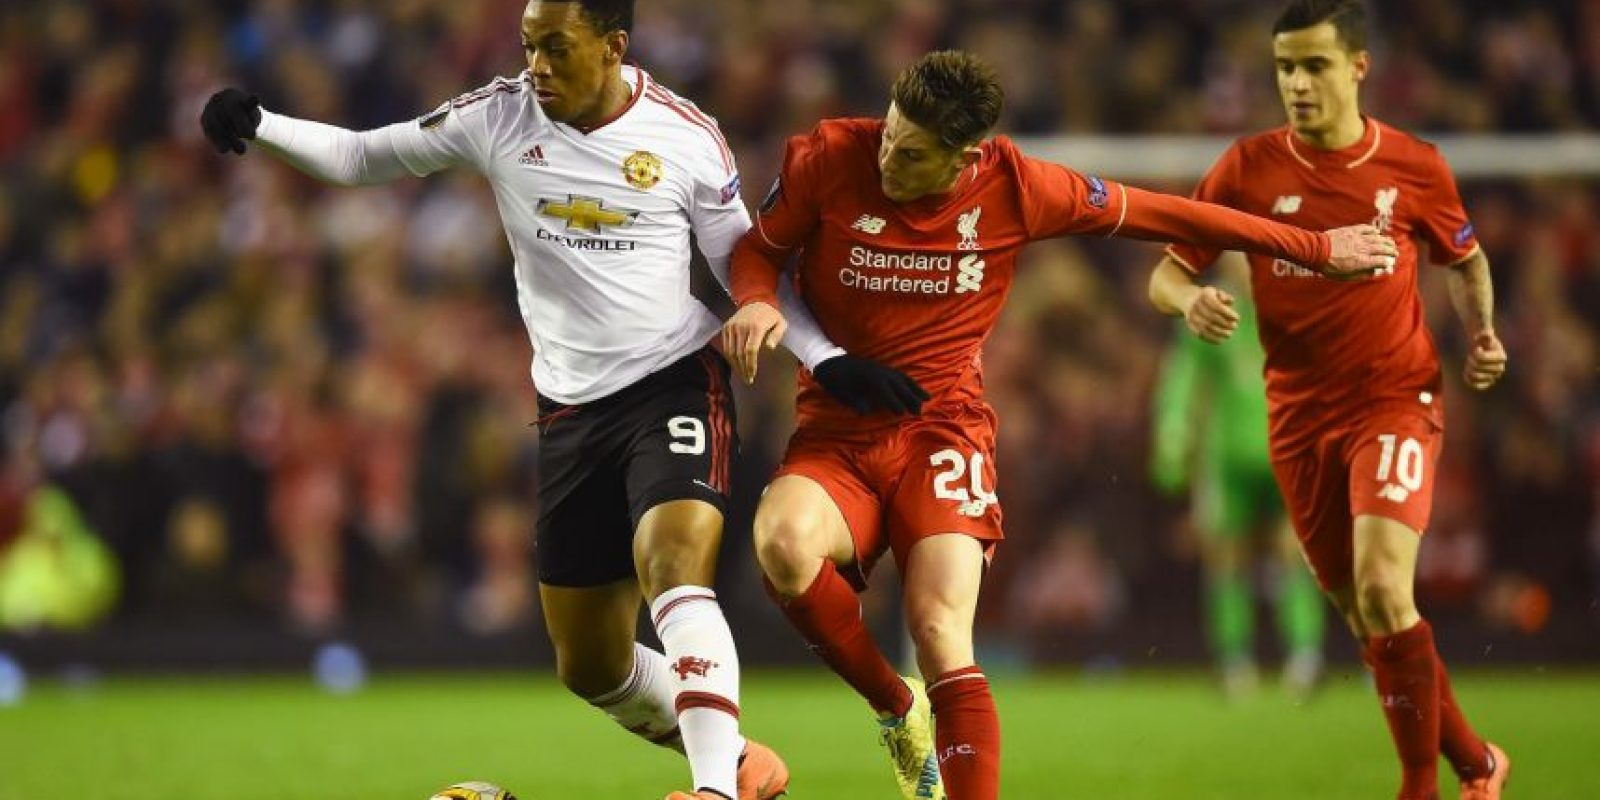 Manchester United vs. Liverpool Foto: Getty Images